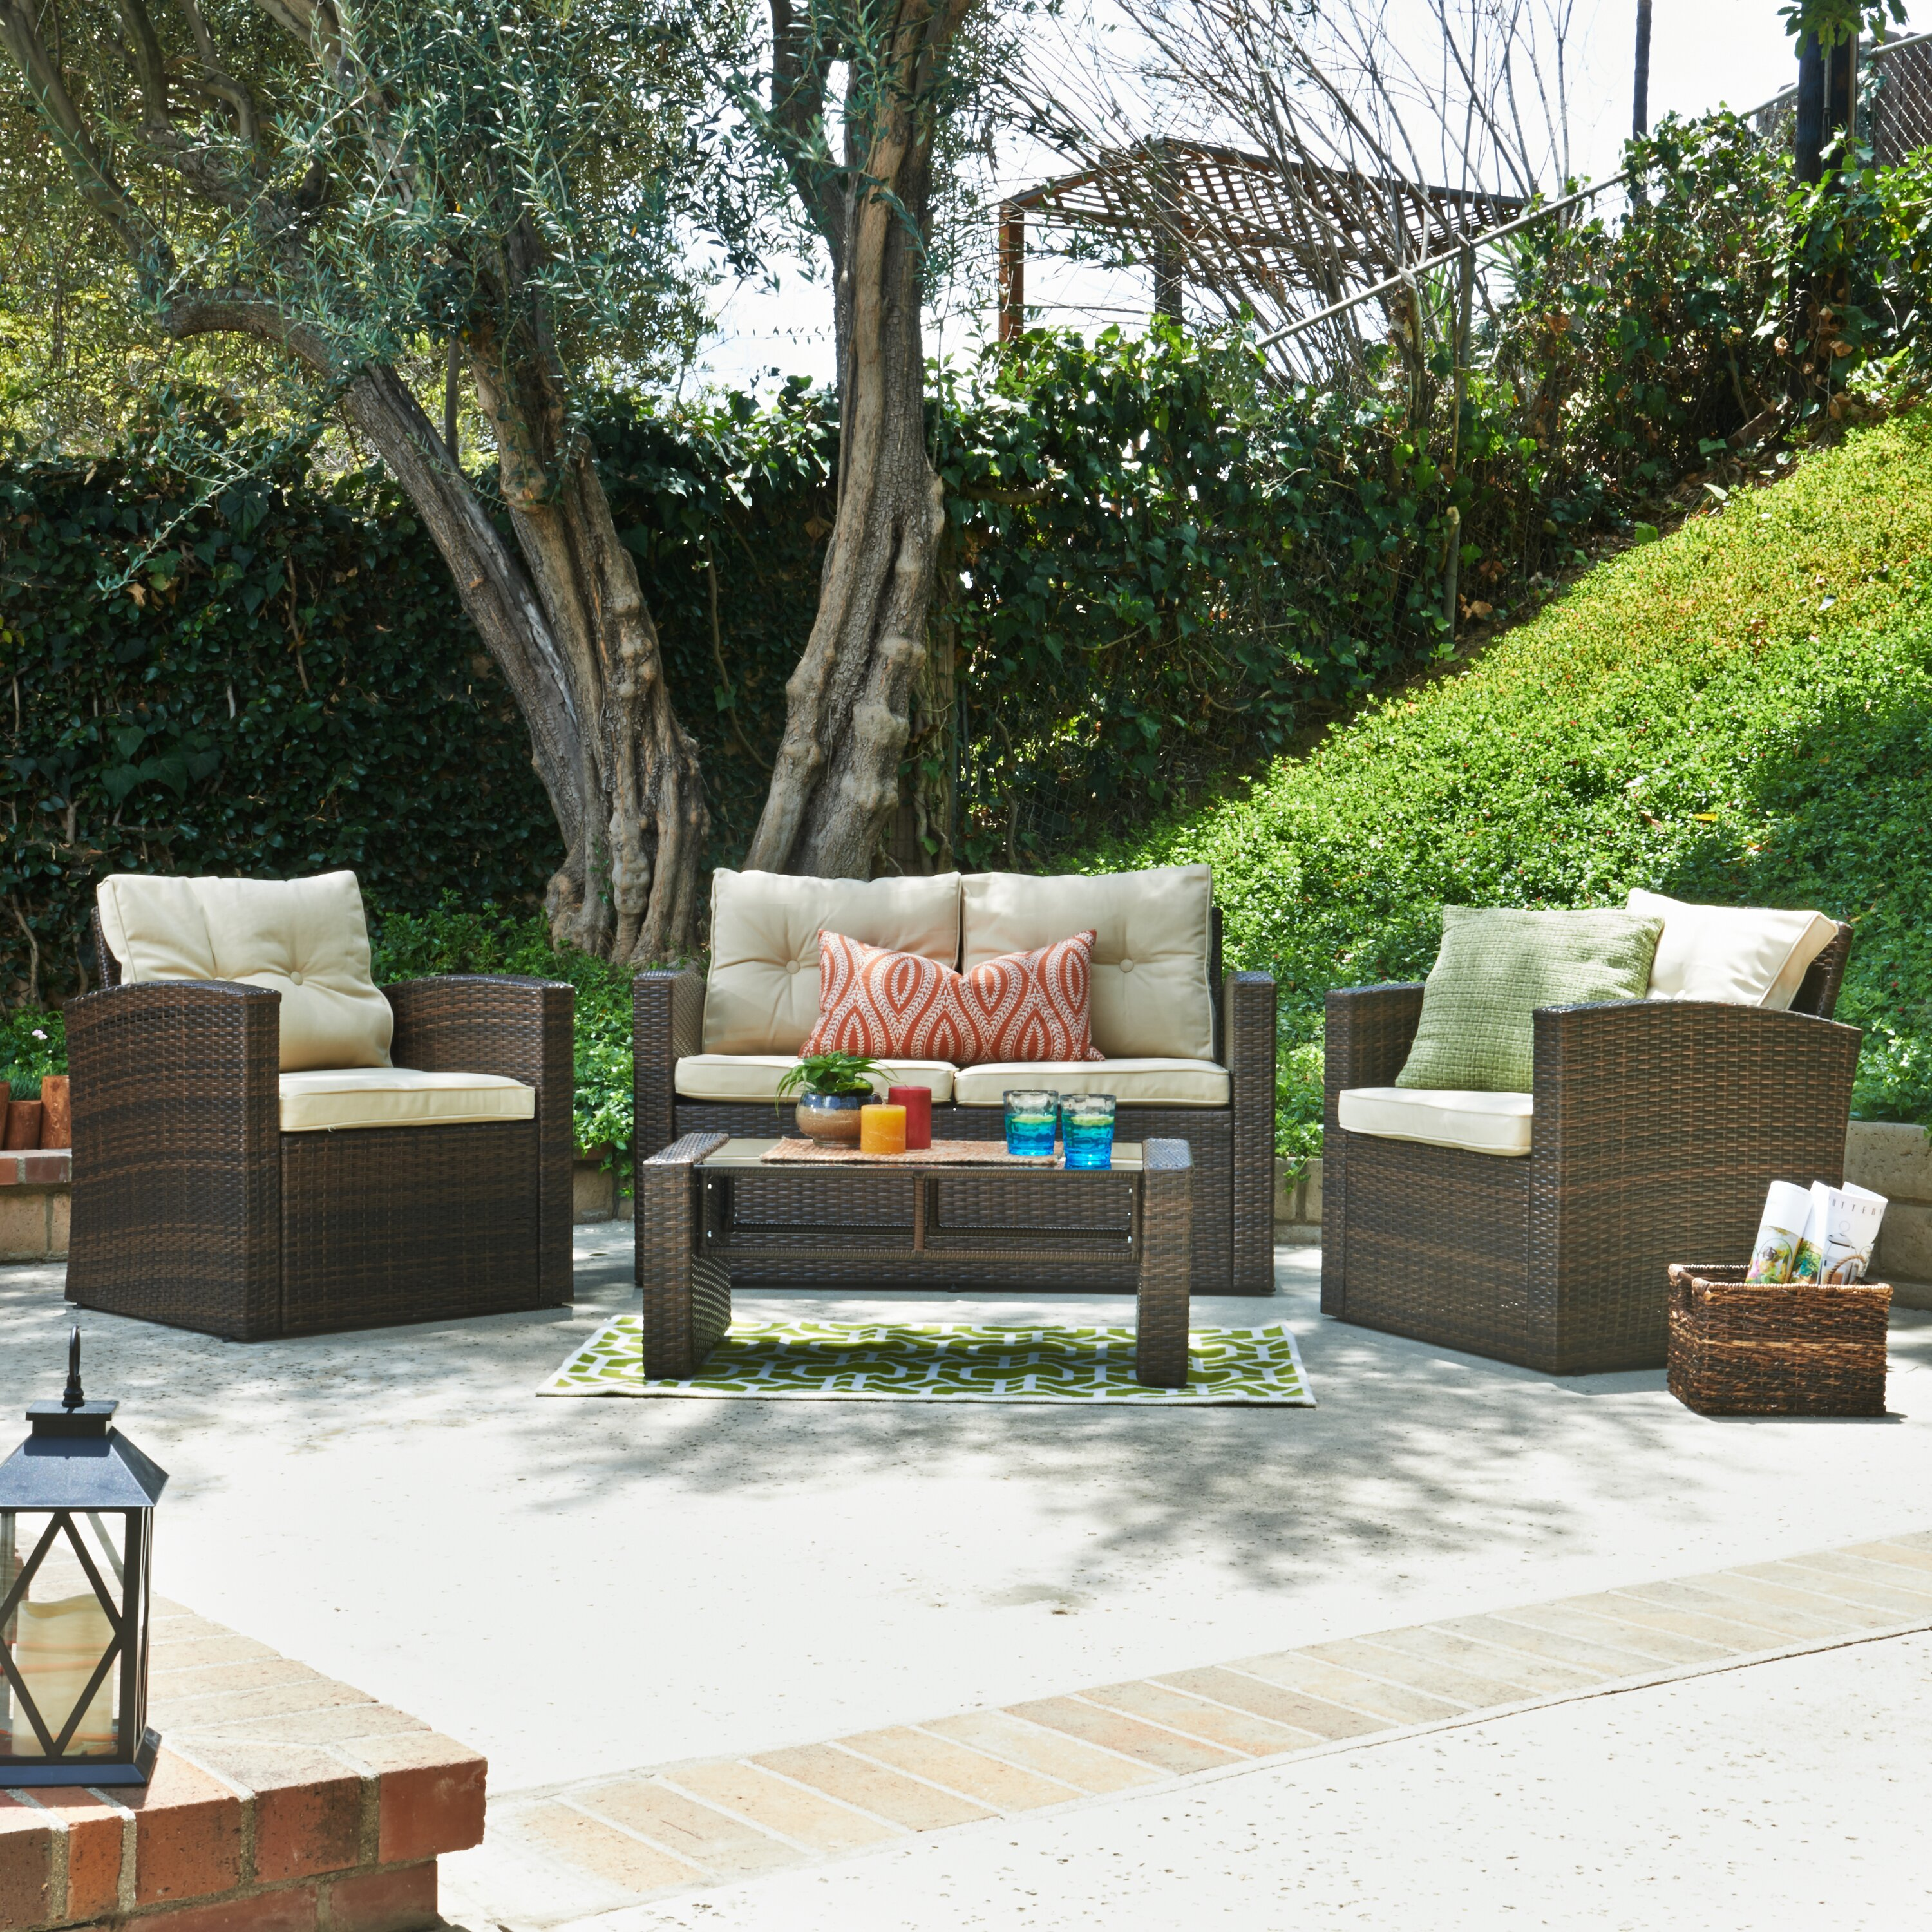 Wayfair Com Furniture: Alcott Hill Raven 4 Piece Seating Group With Cushion